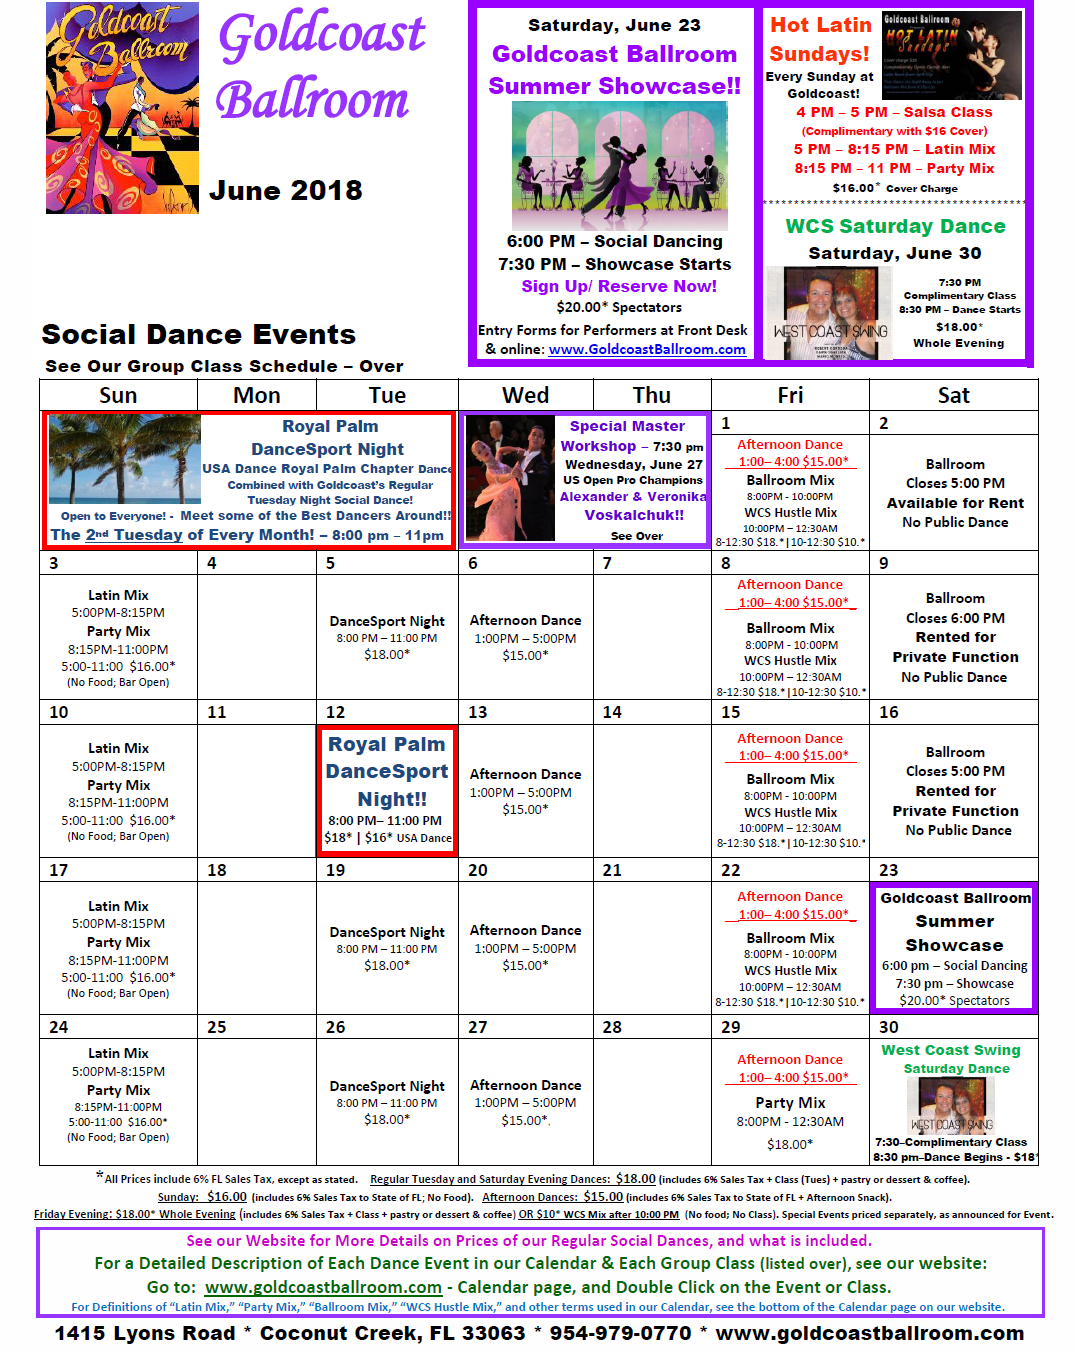 Goldcoast Ballroom June 2018 Calendar - Social Dance Events